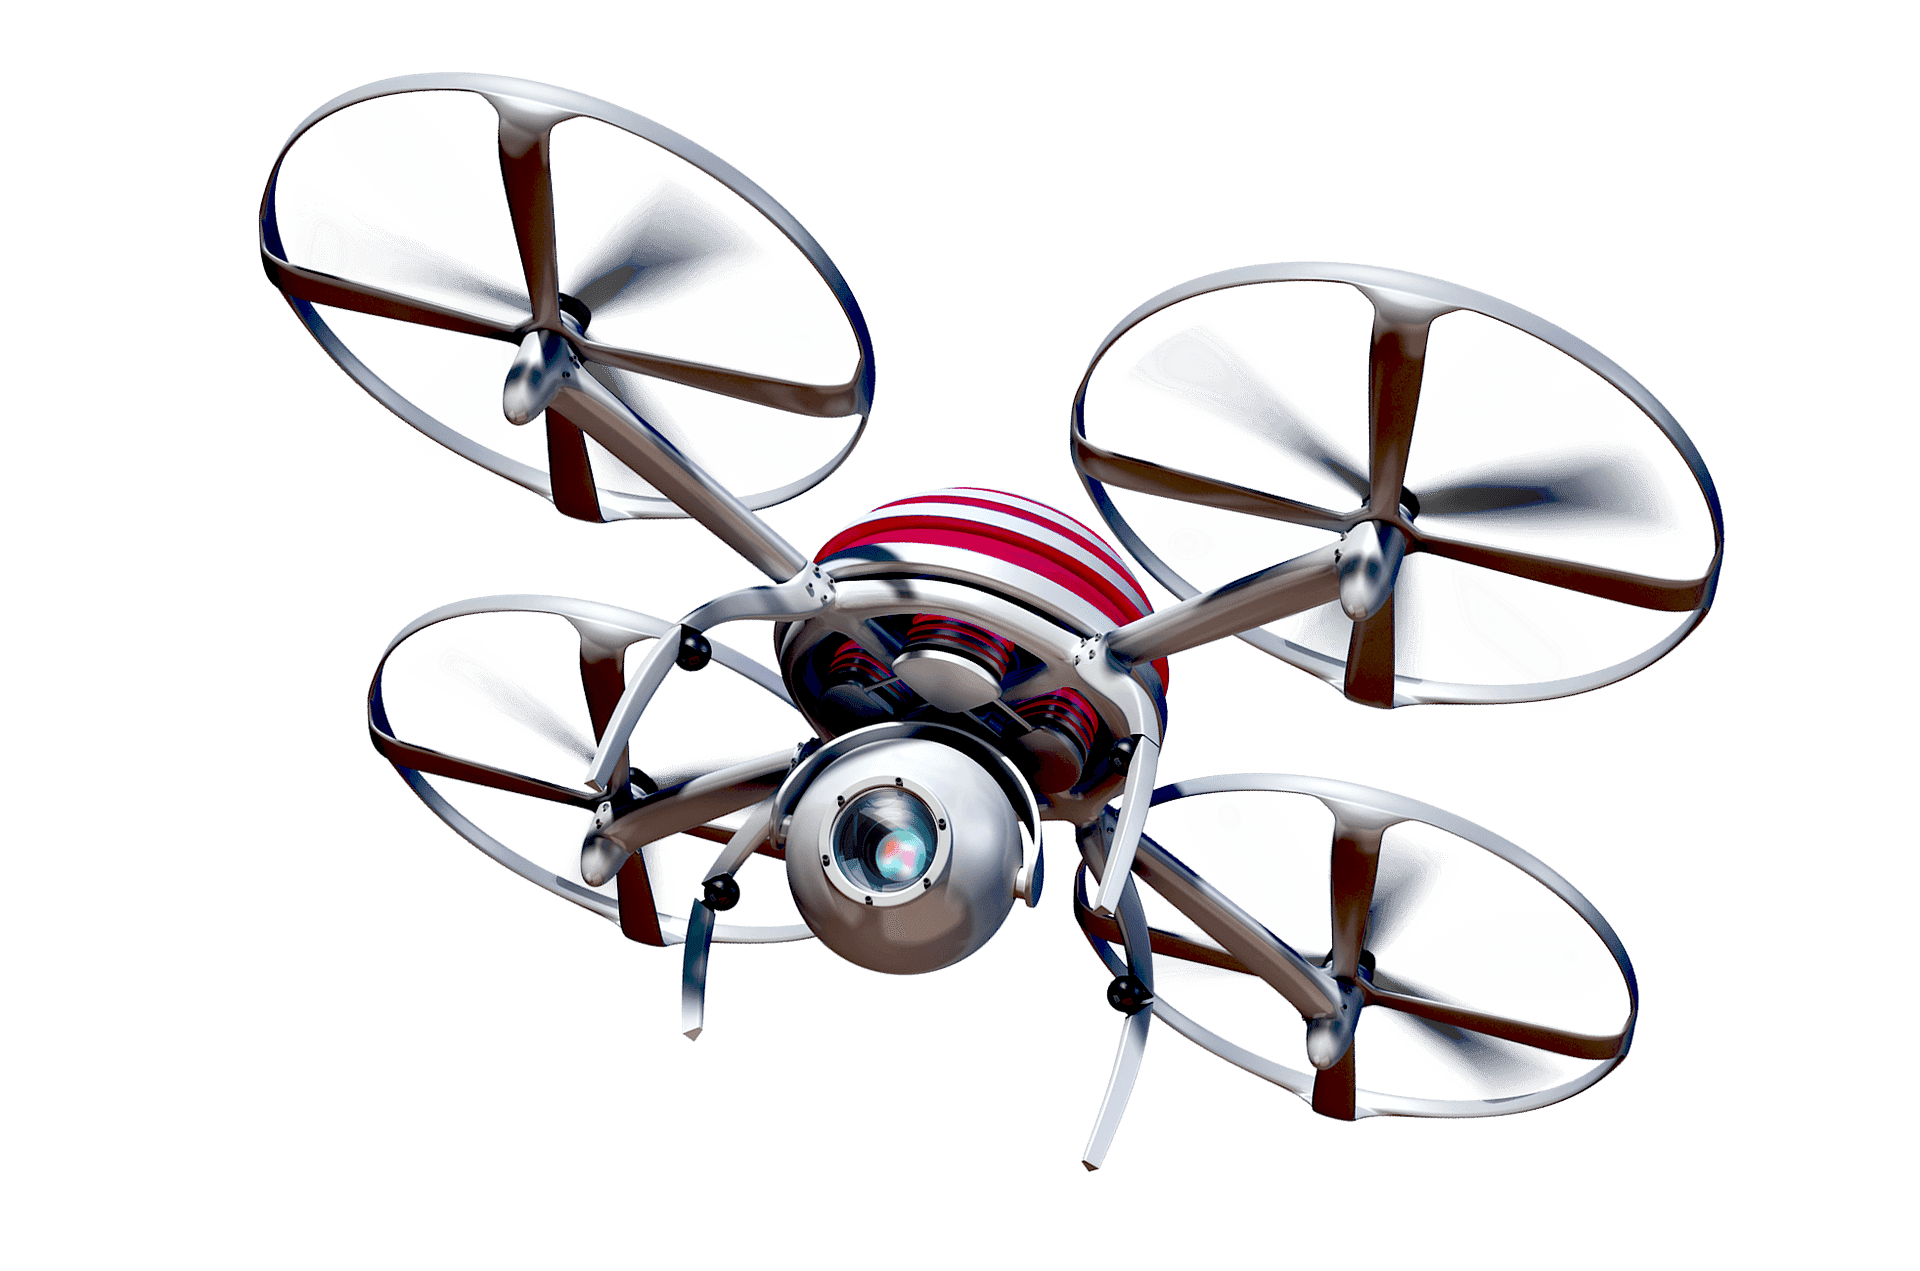 content/en-in/images/repository/isc/2020/a-spy-drone-with-large-camera-lens.png